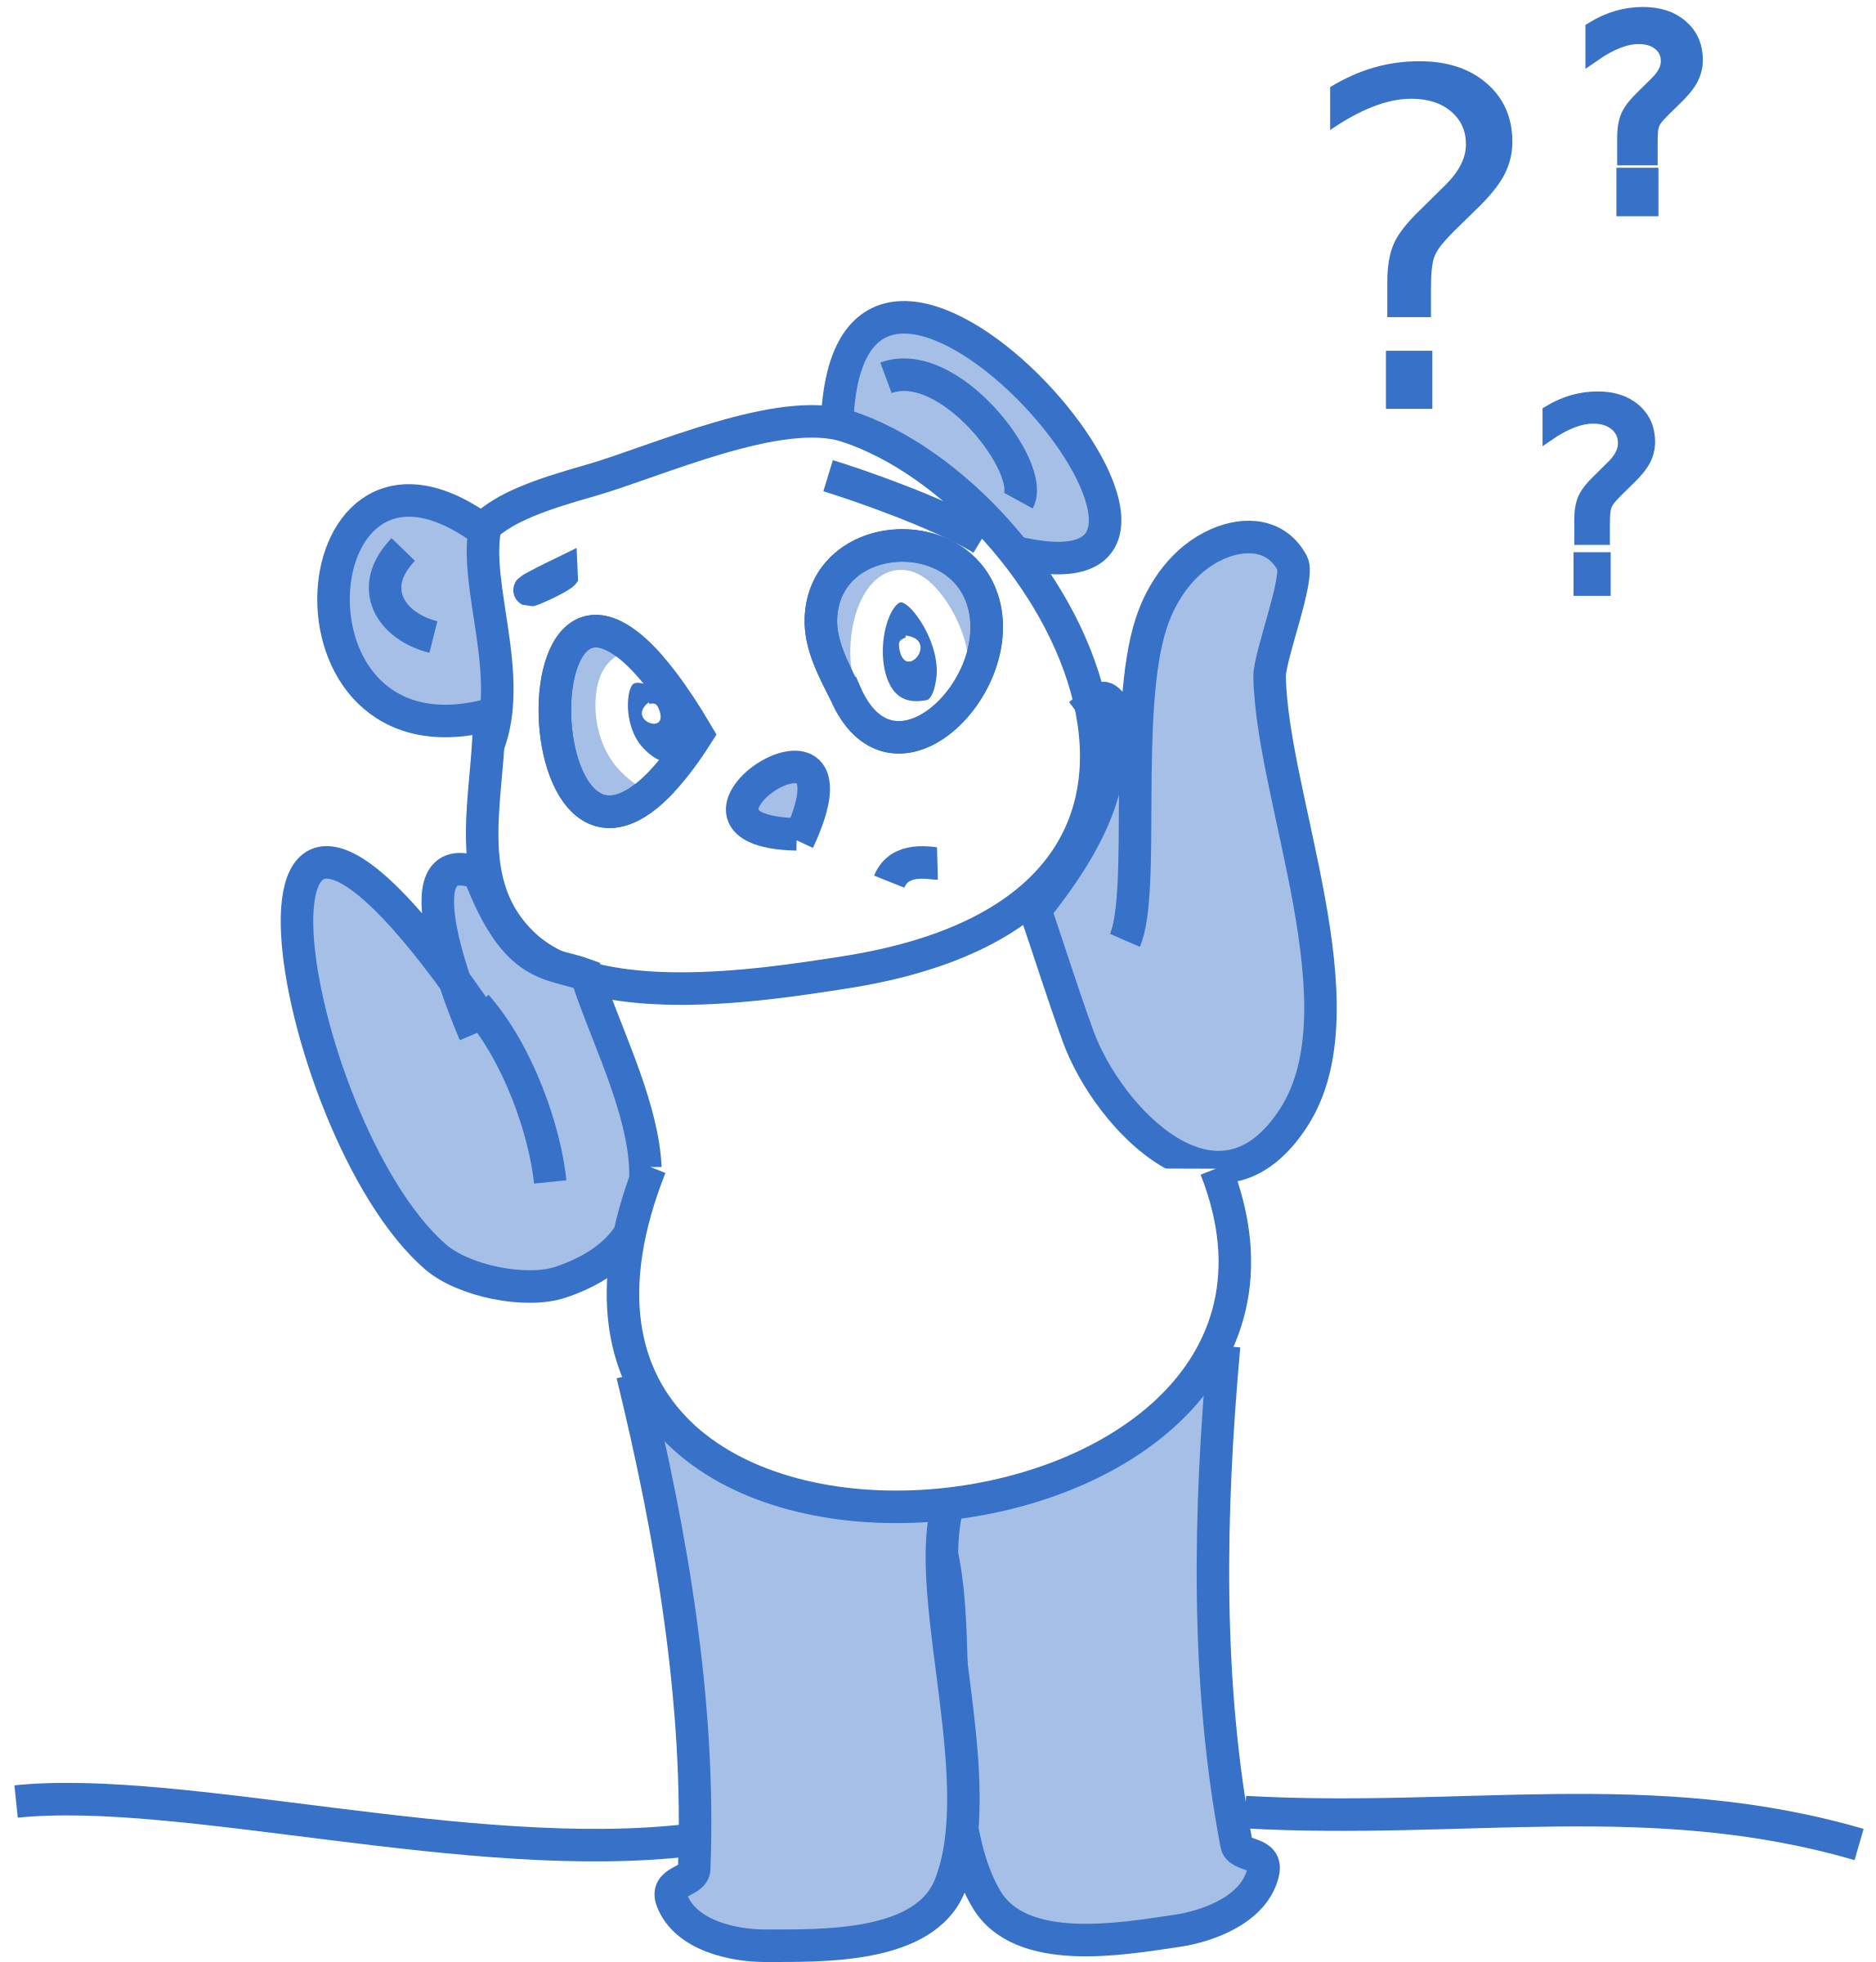 Blue panda png. Confused icons free and